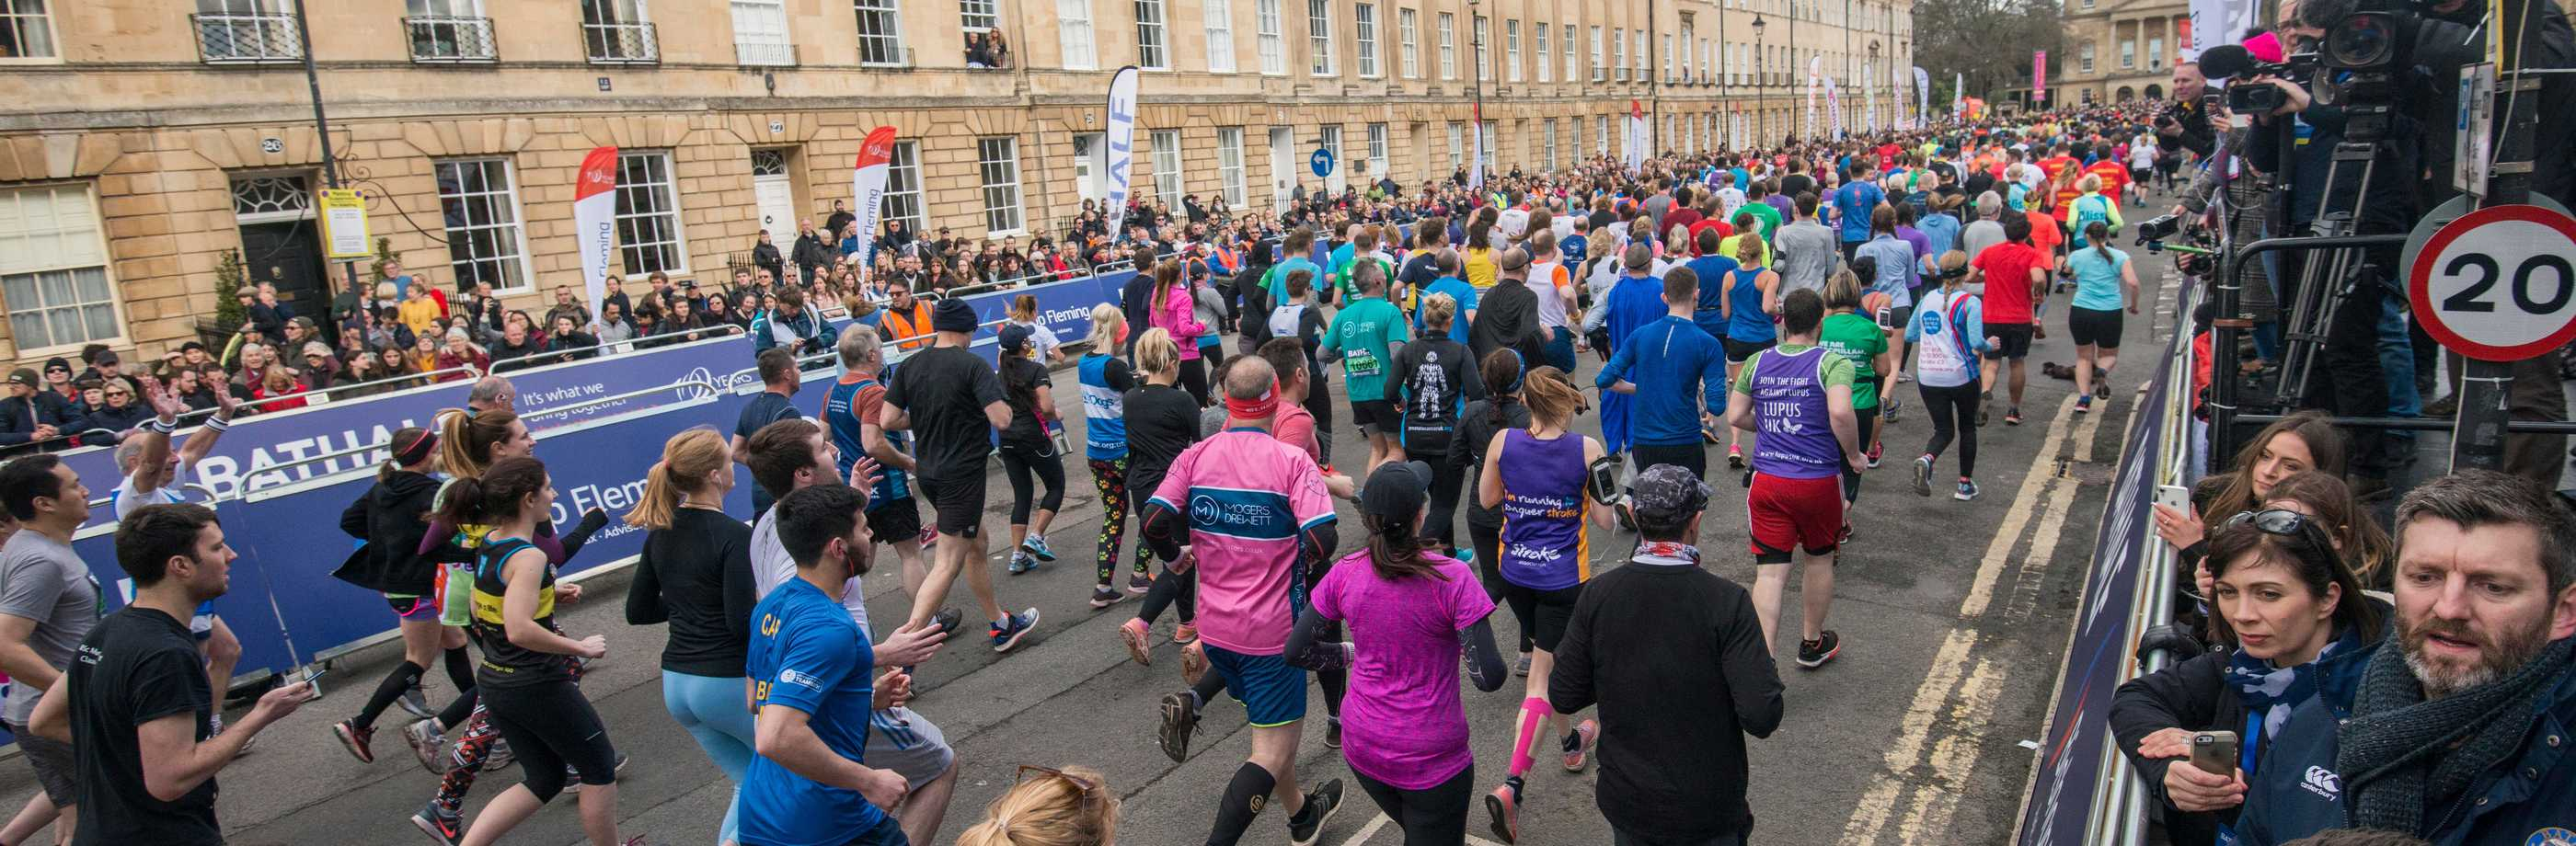 Bath Half runners seen from behind in wide Georgian street